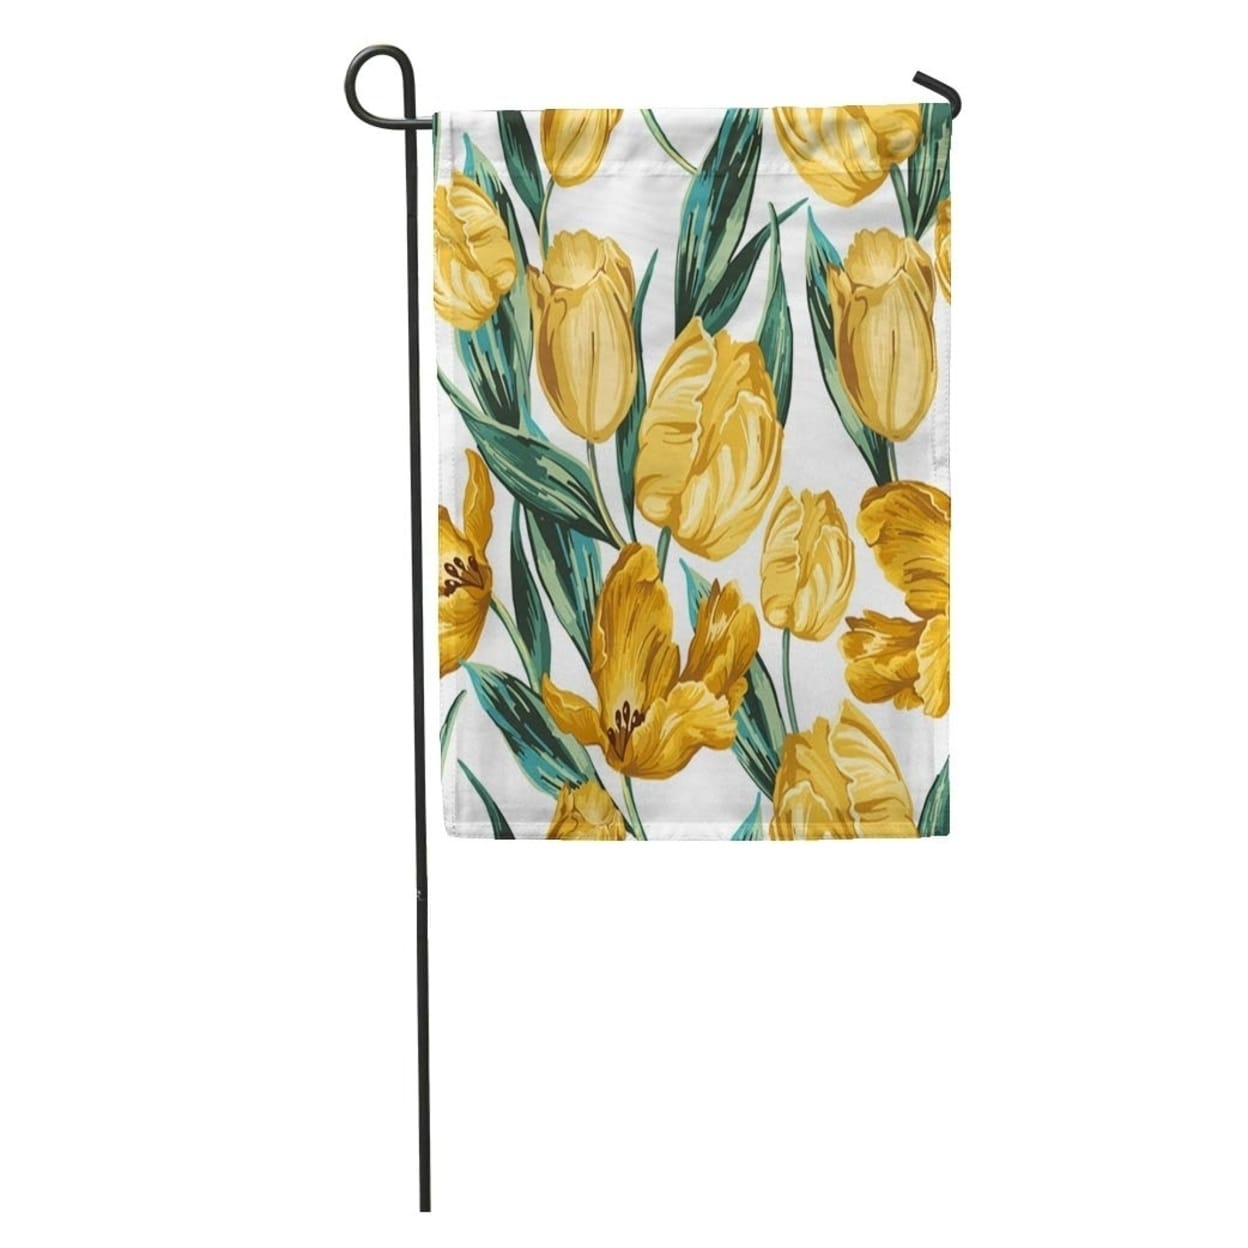 Green Flower Of Yellow Tulips On Pattern Floral Vintage Garden Garden Flag Decorative Flag House Banner 28x40 Inch On Sale Overstock 31325354